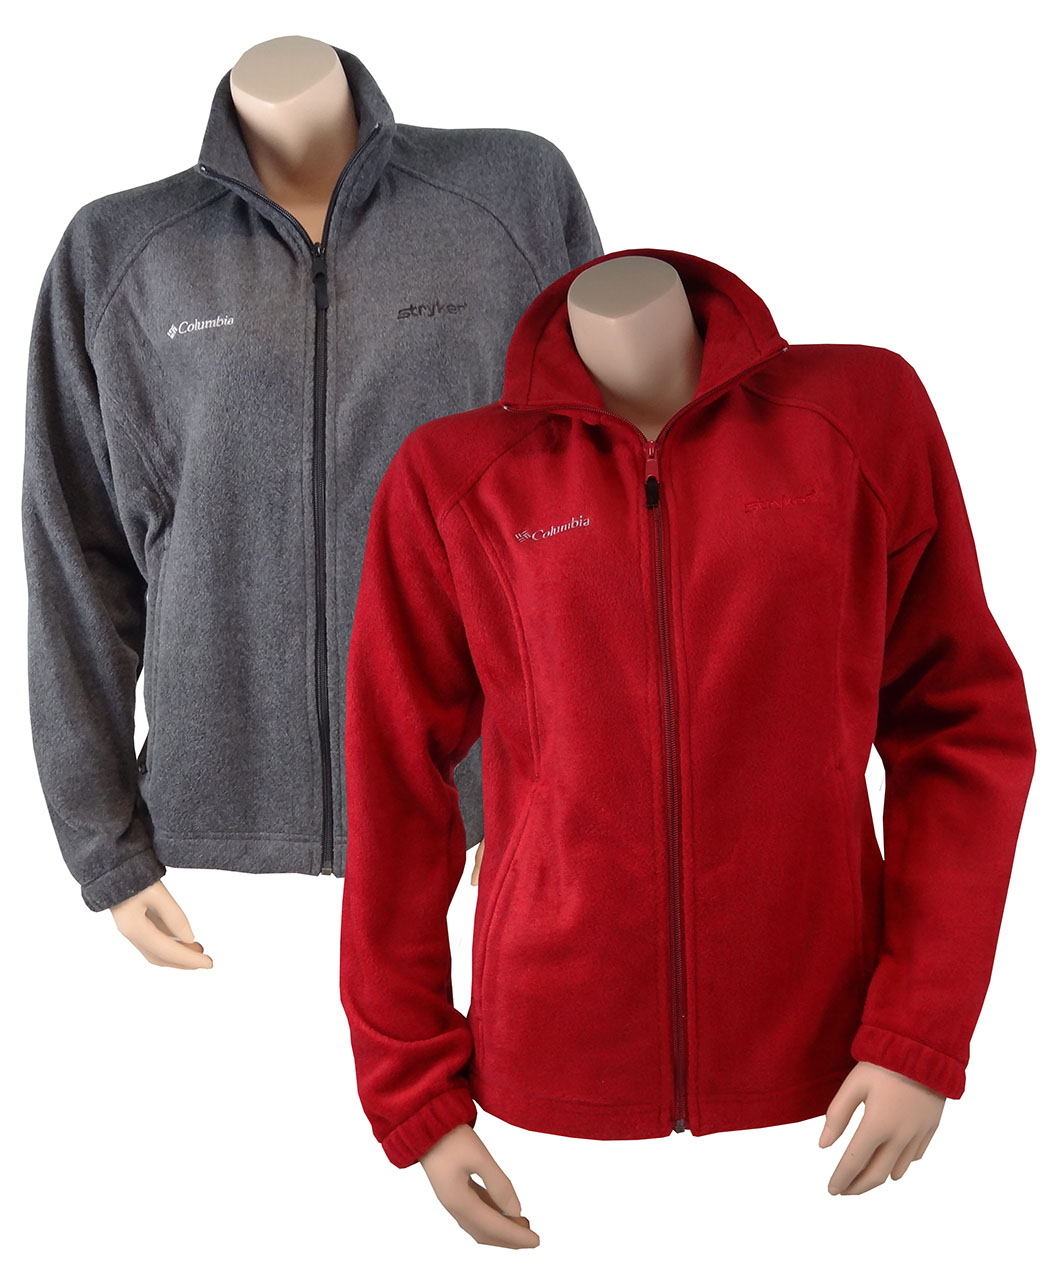 WOMEN'S COLUMBIA FULL ZIP FLEECE JACKET**DISC**